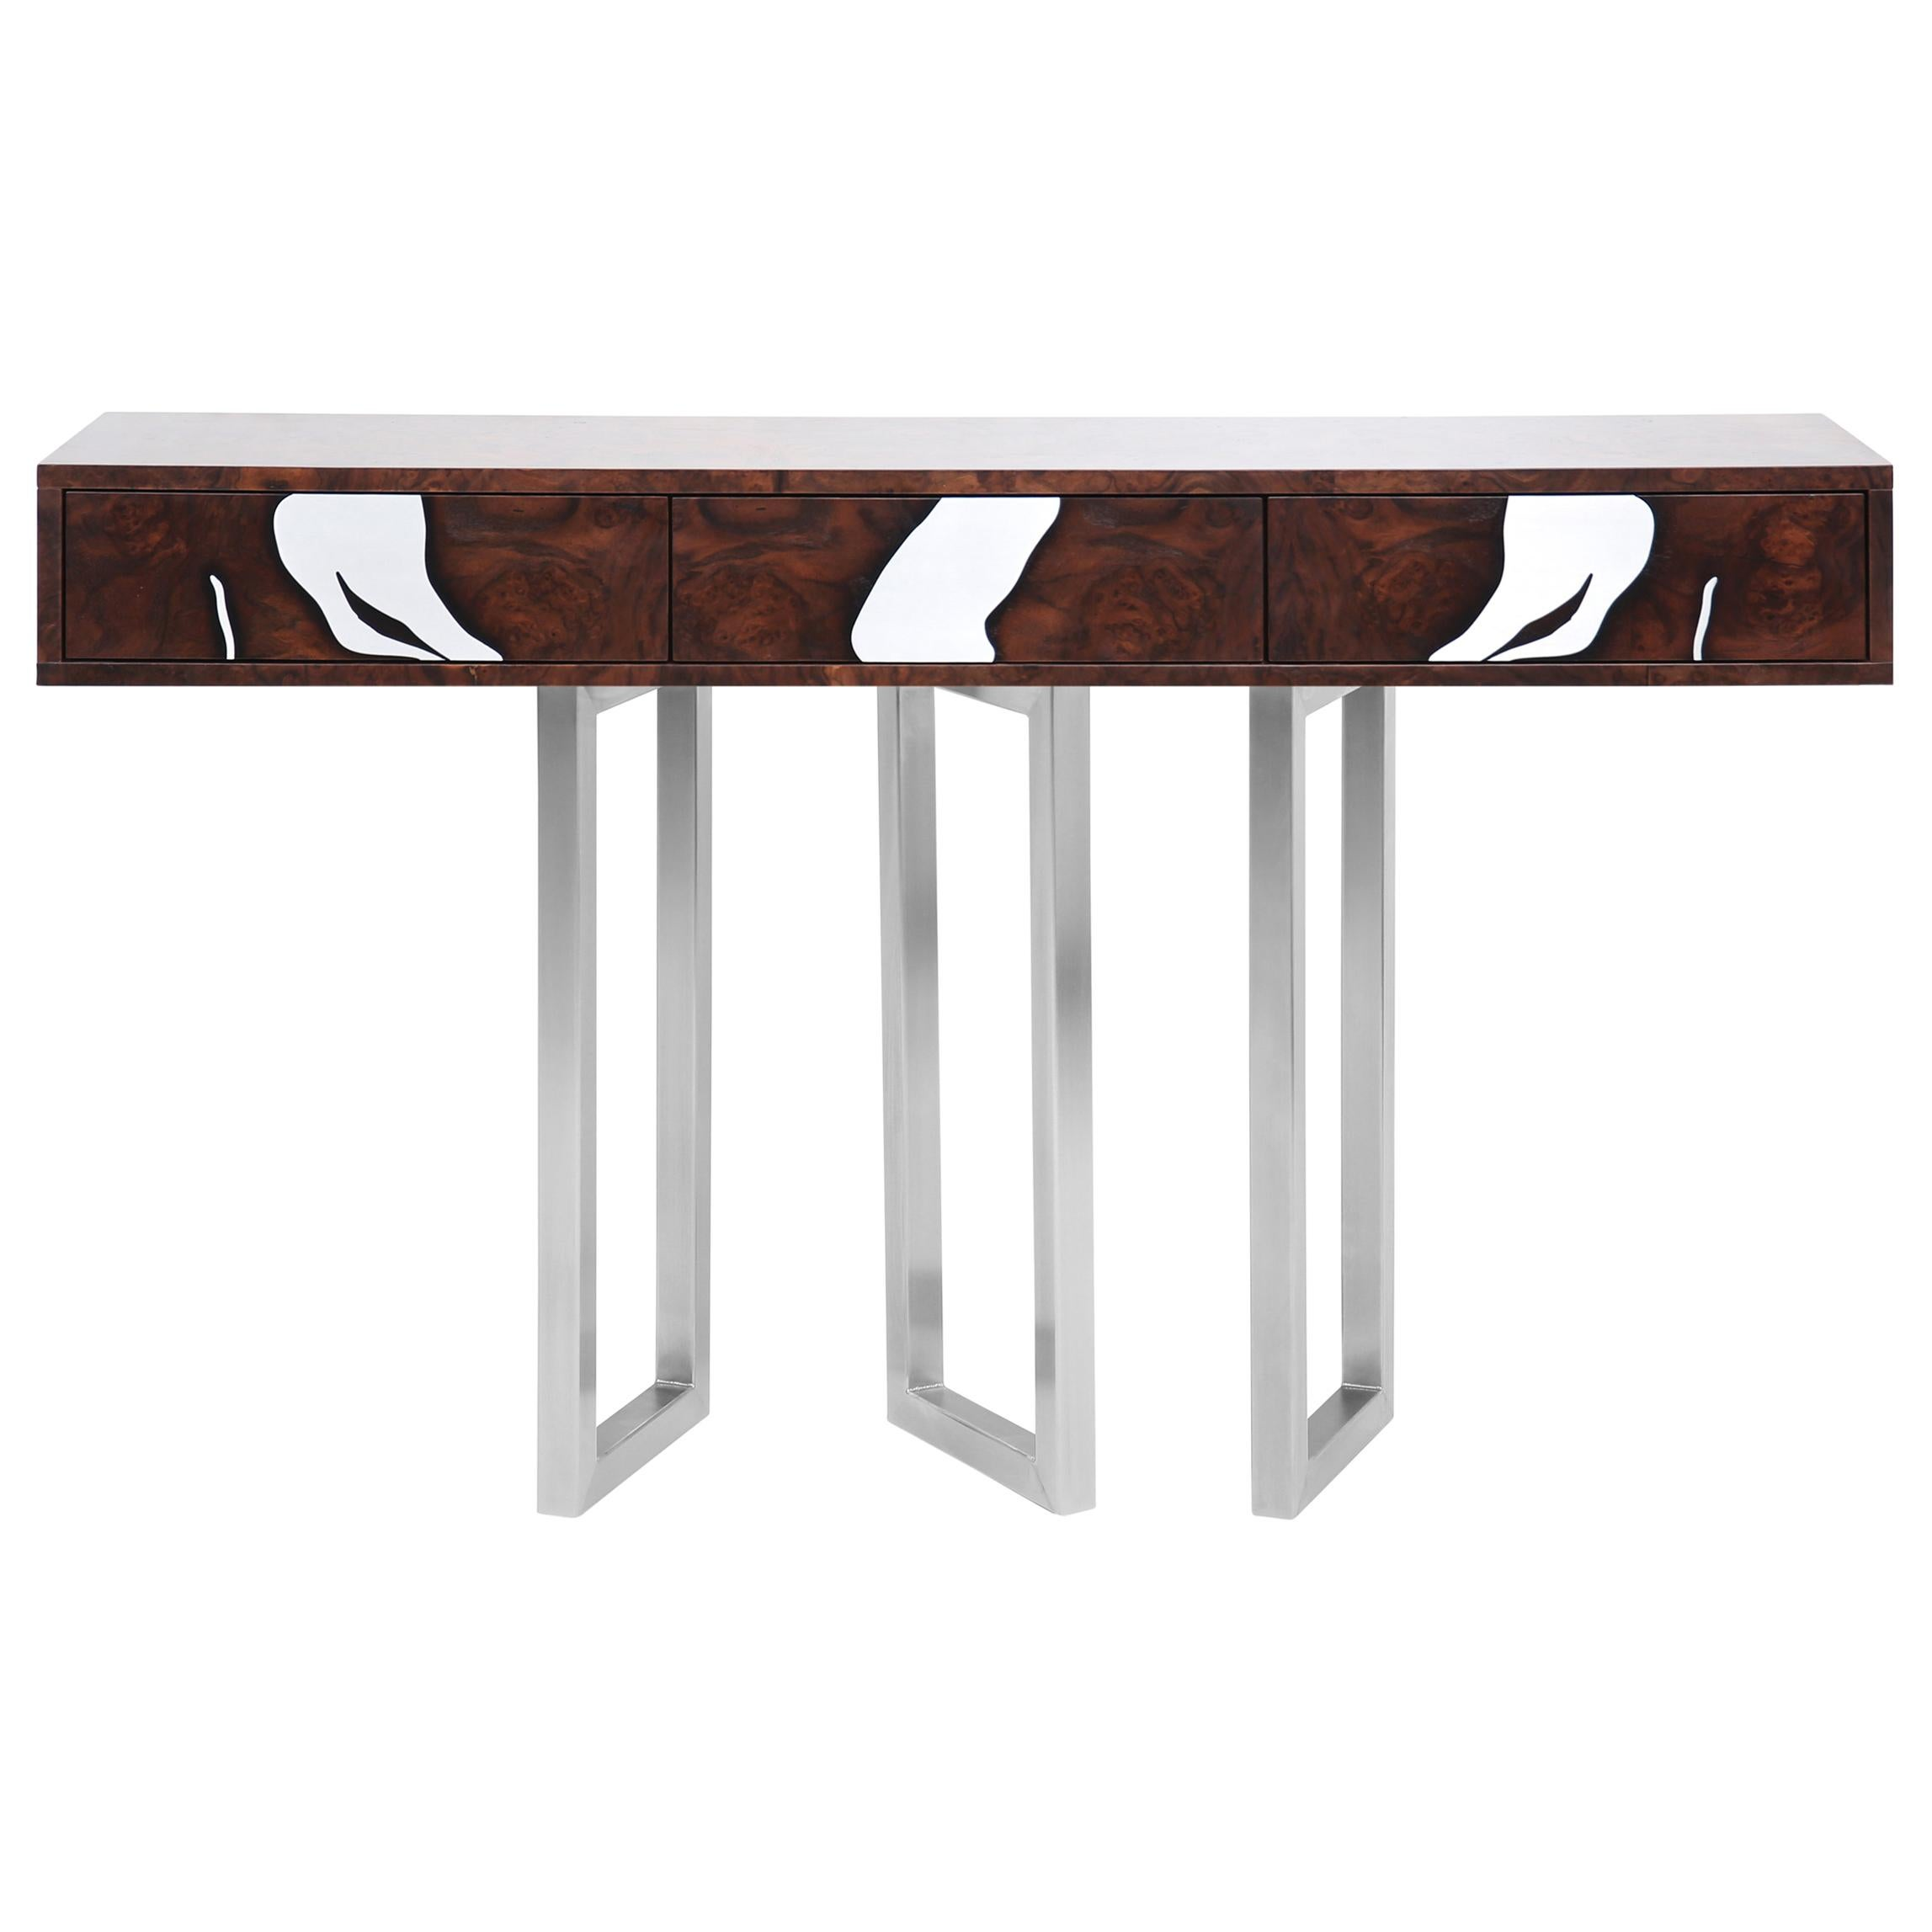 Contemporary Oxara Console Table in Walnut Root, Stainless Steel